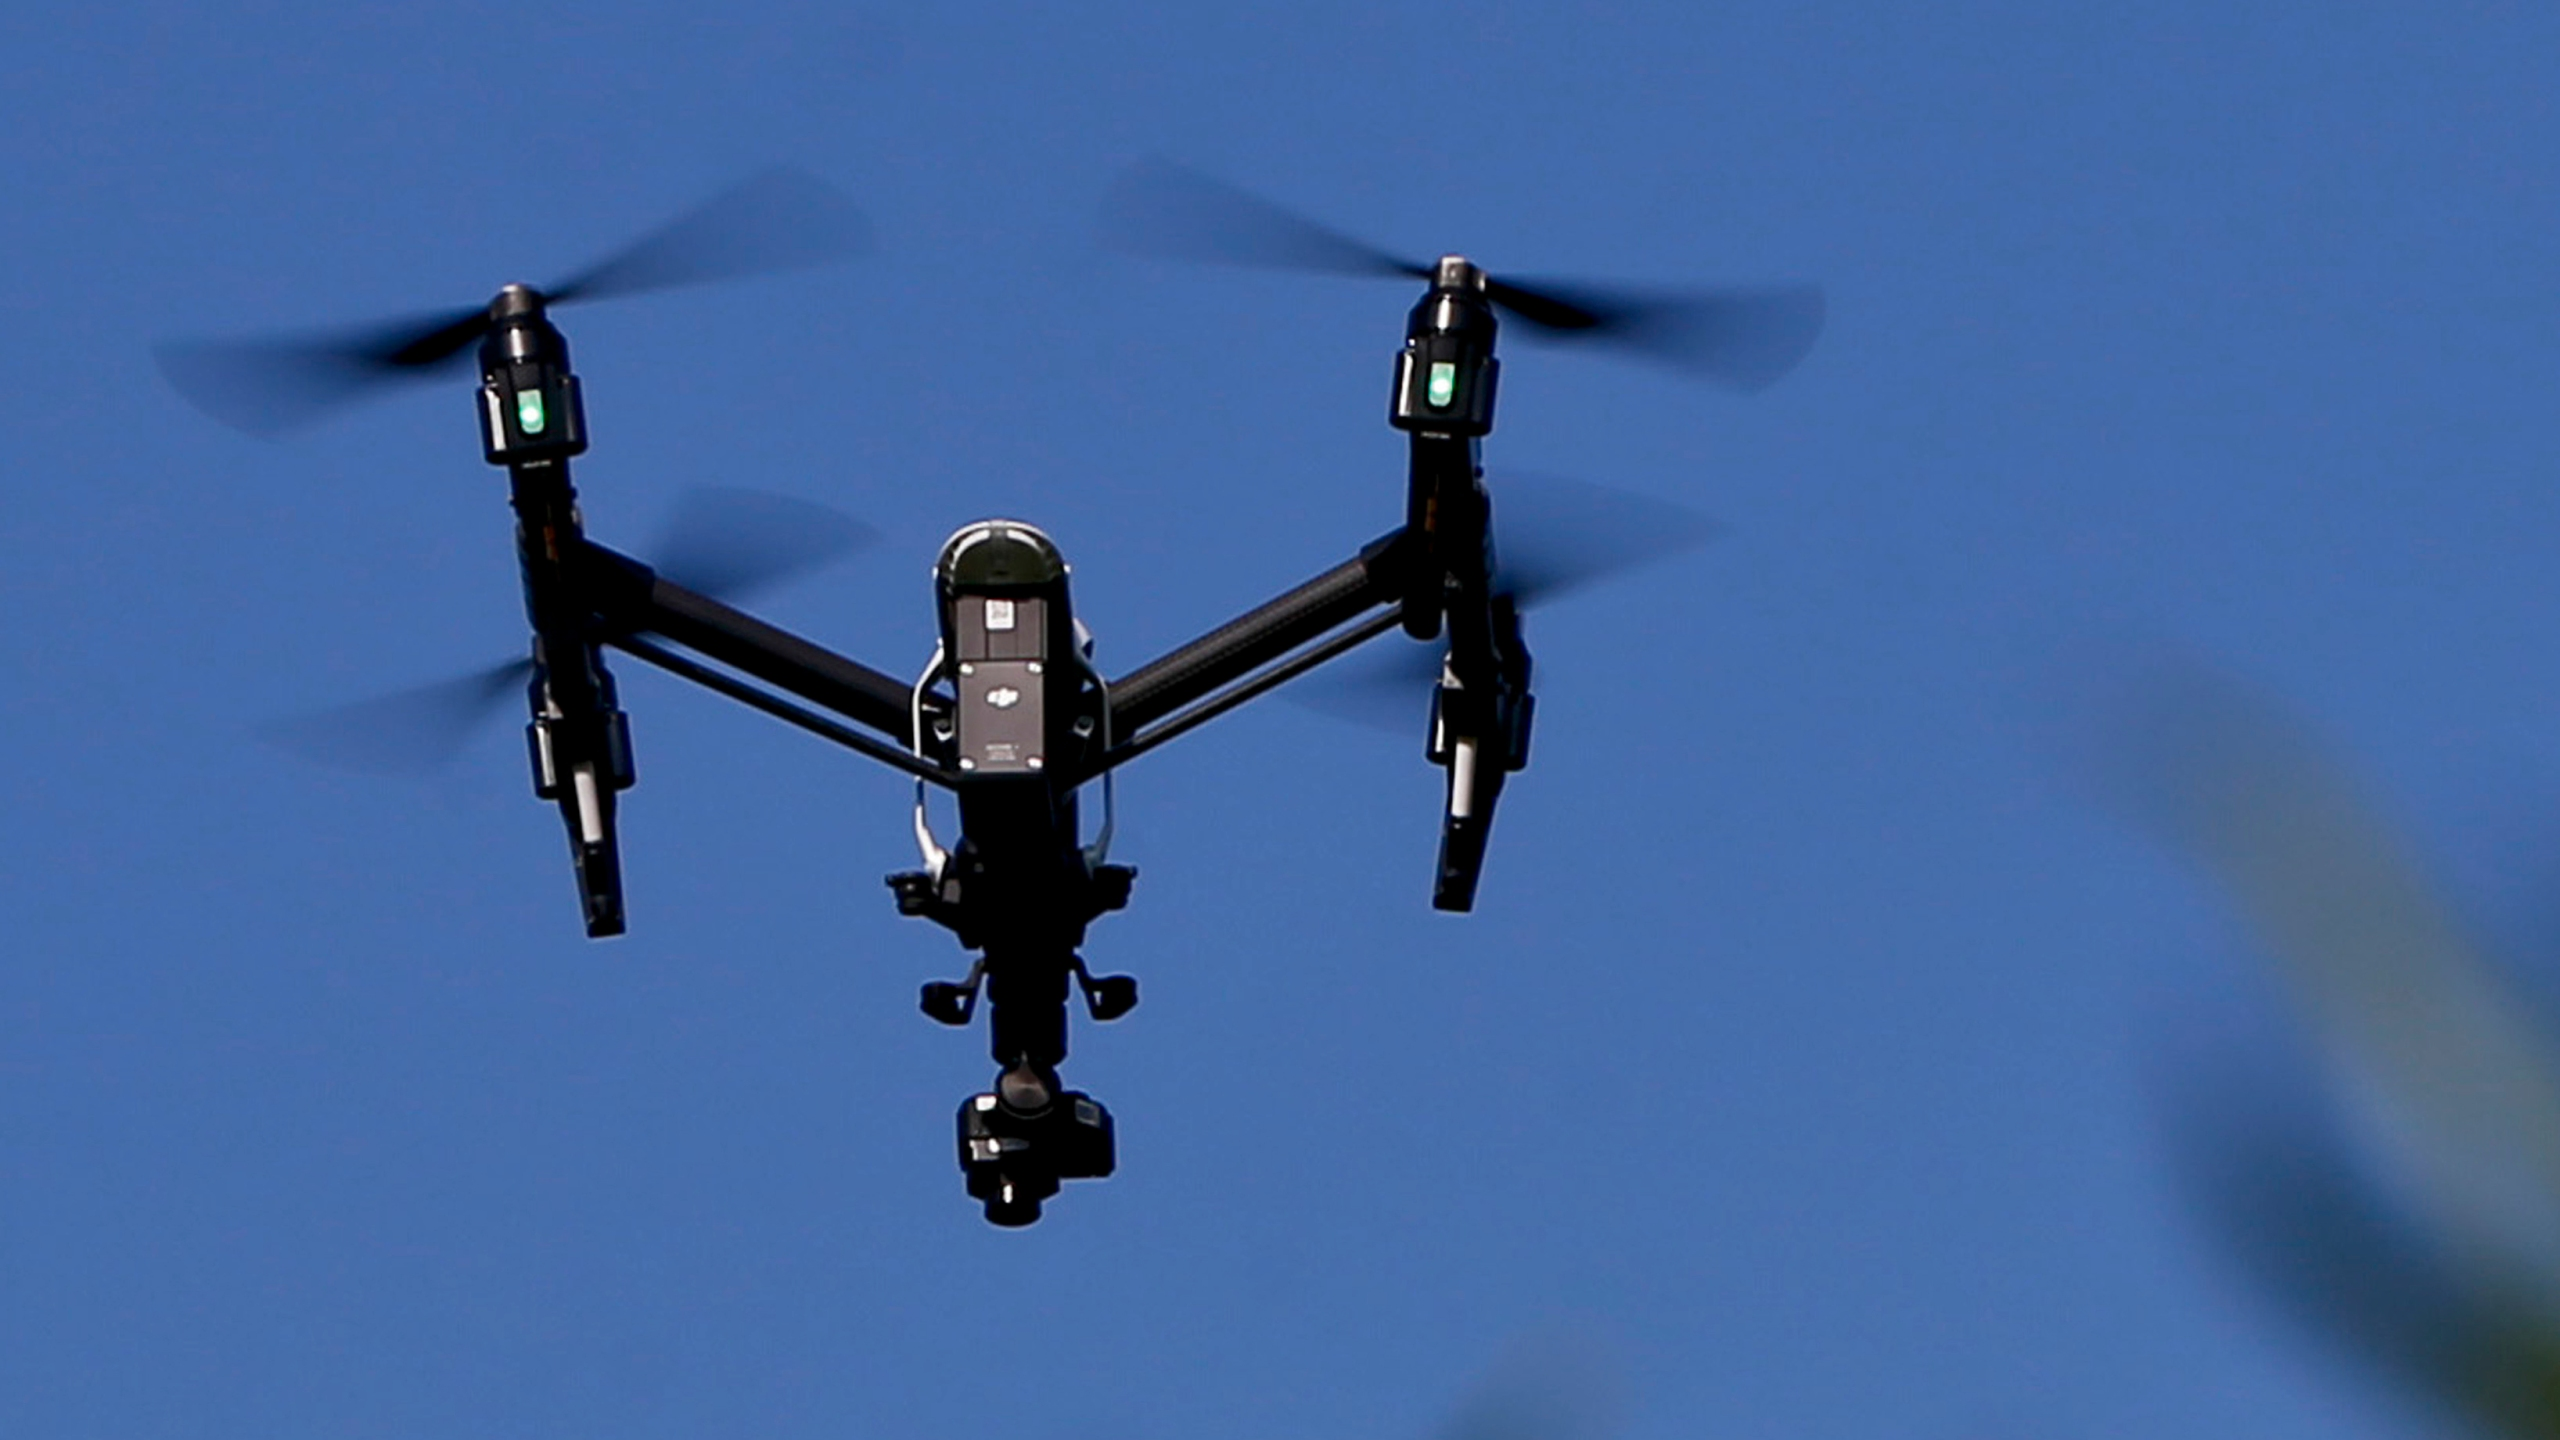 Drones_Security_32781-159532.jpg80721559